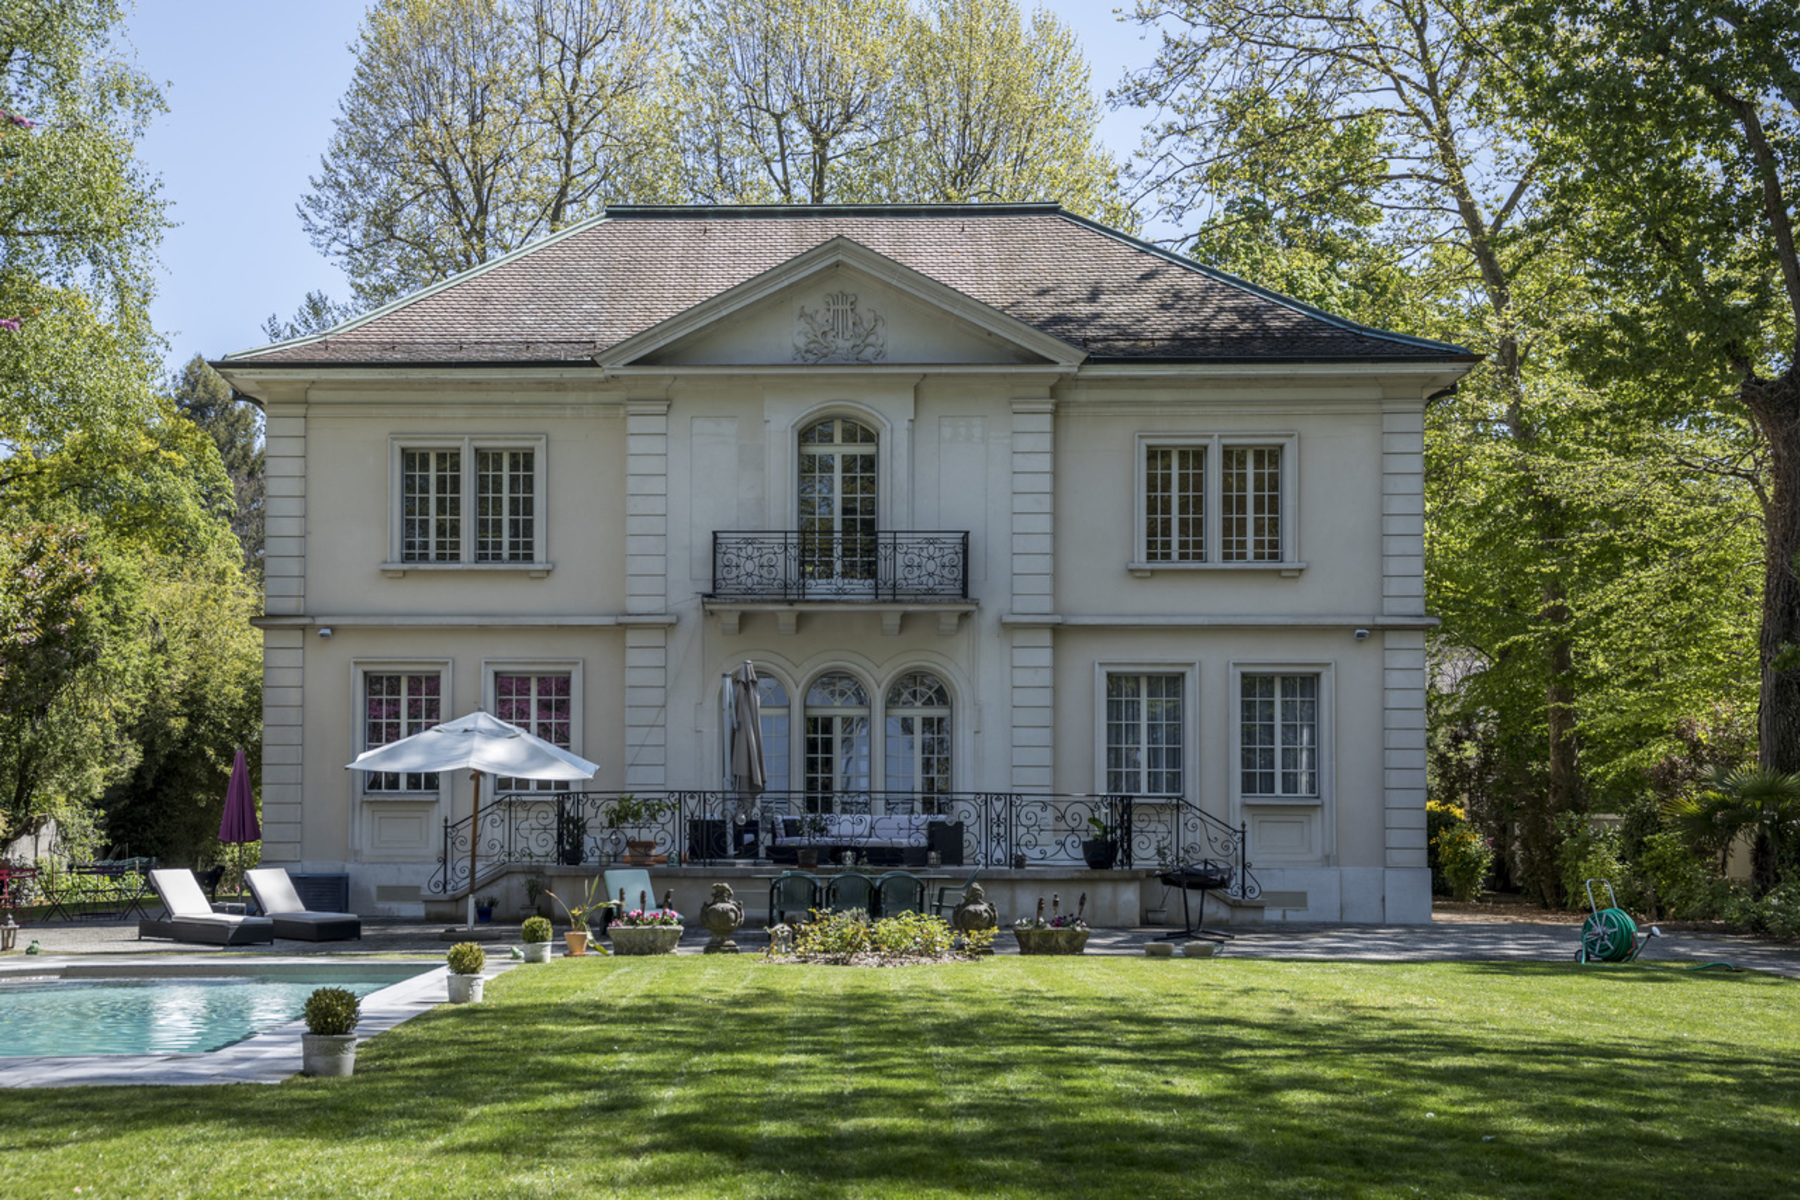 Single Family Home for Sale at Stunning waterfront mansion Vésenaz Vesenaz, Geneva, 1222 Switzerland